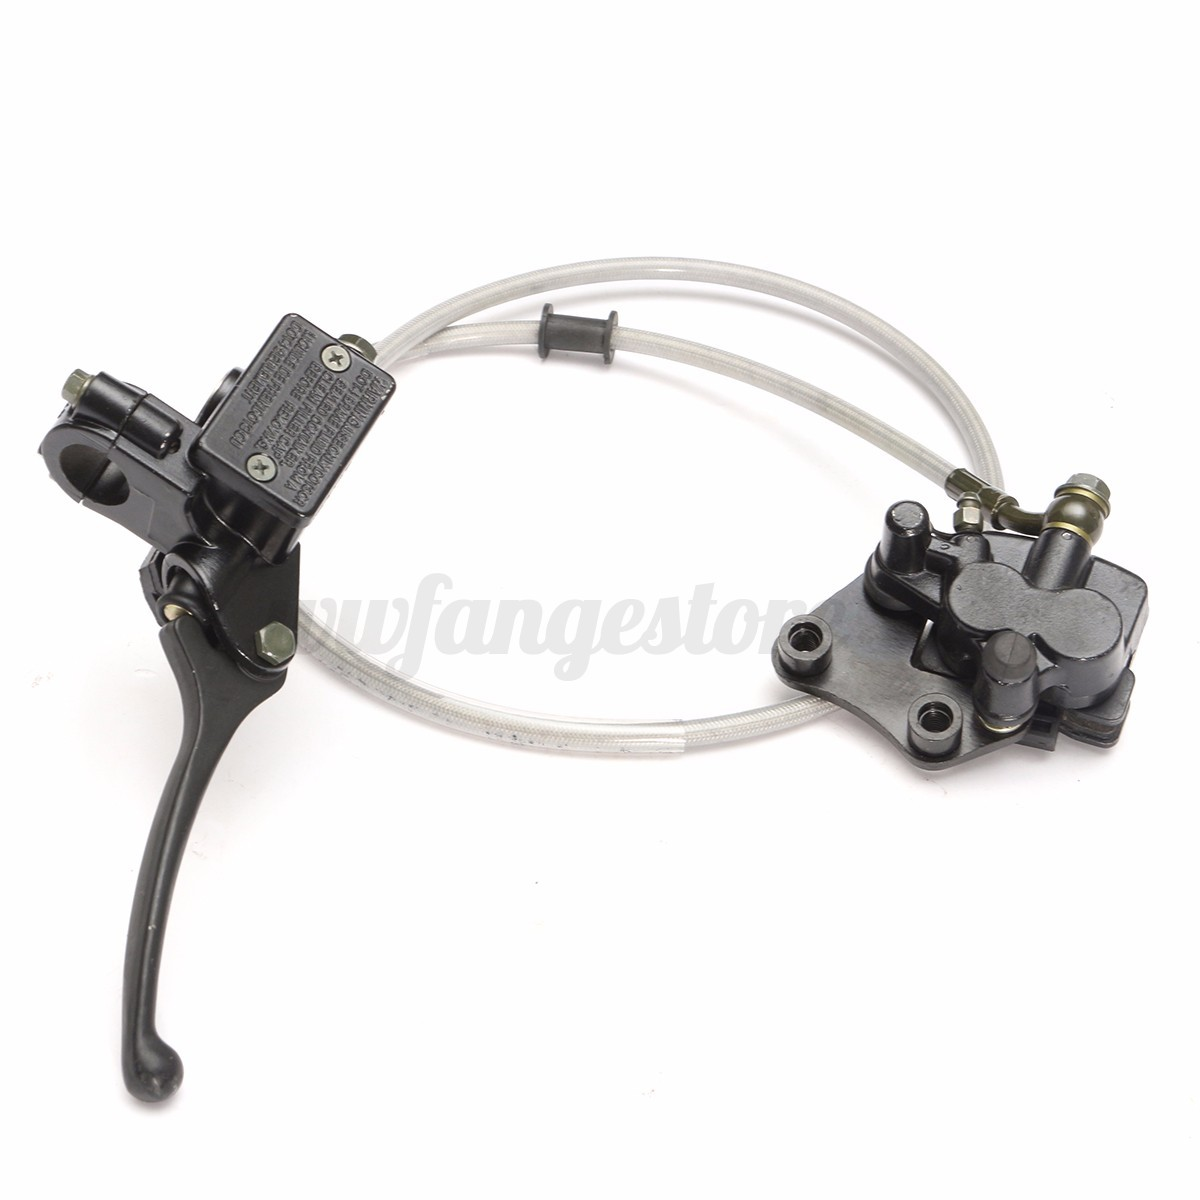 Pit Bike Front Brake Complete No Bleeding Ready To Use 110cc 120cc Wiring Loom Harness Kill Switch For 50cc 125 140 150 160cc Twin Piston Hydraulic Assembly Crf50 Sized Bikes